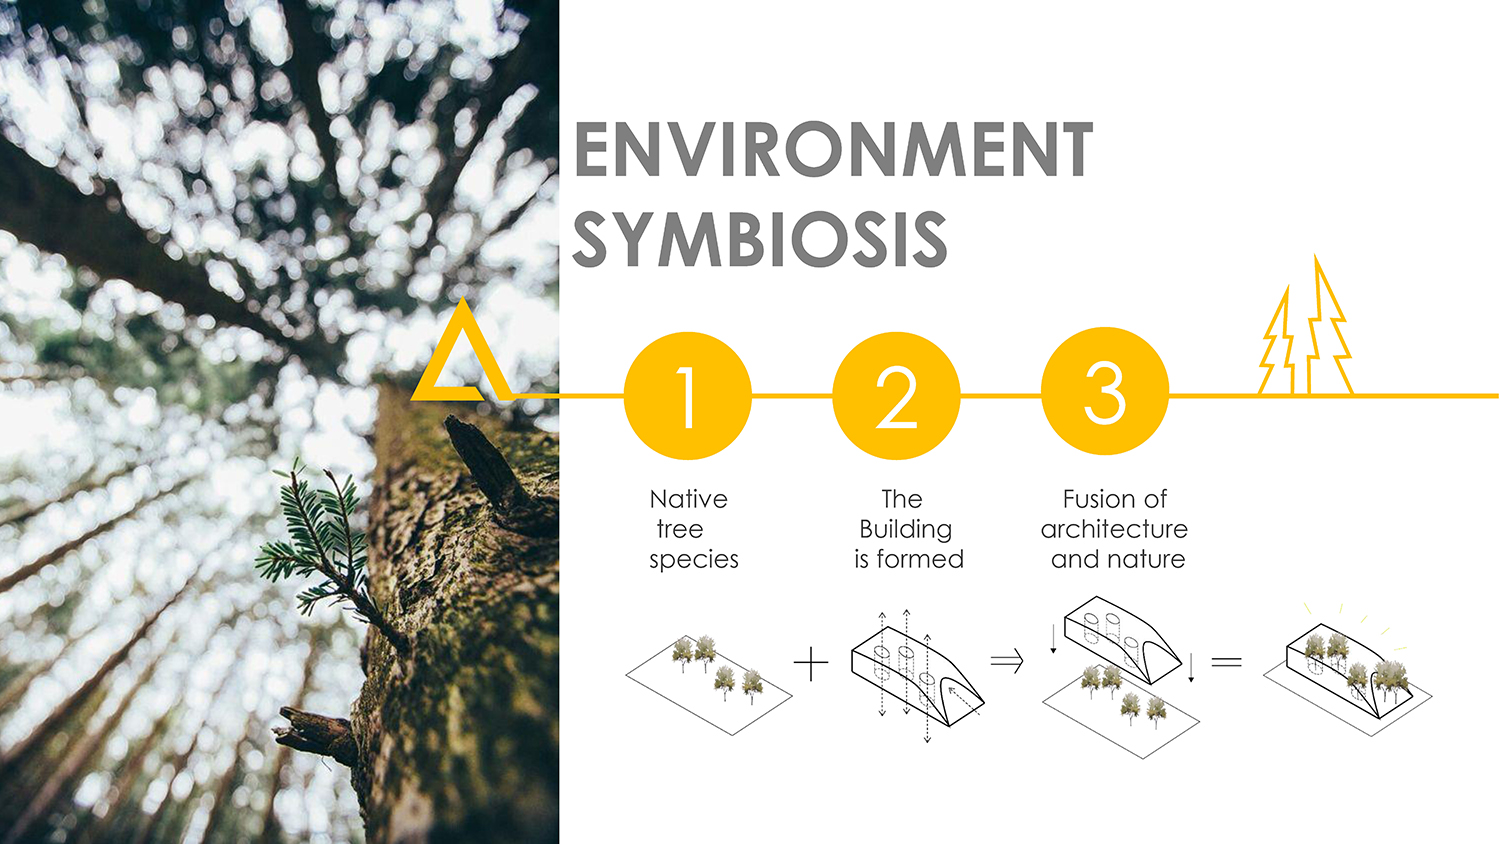 ENVIRONMENT SYMBIOSIS Chain10 Architecture & Interior Design Institute}